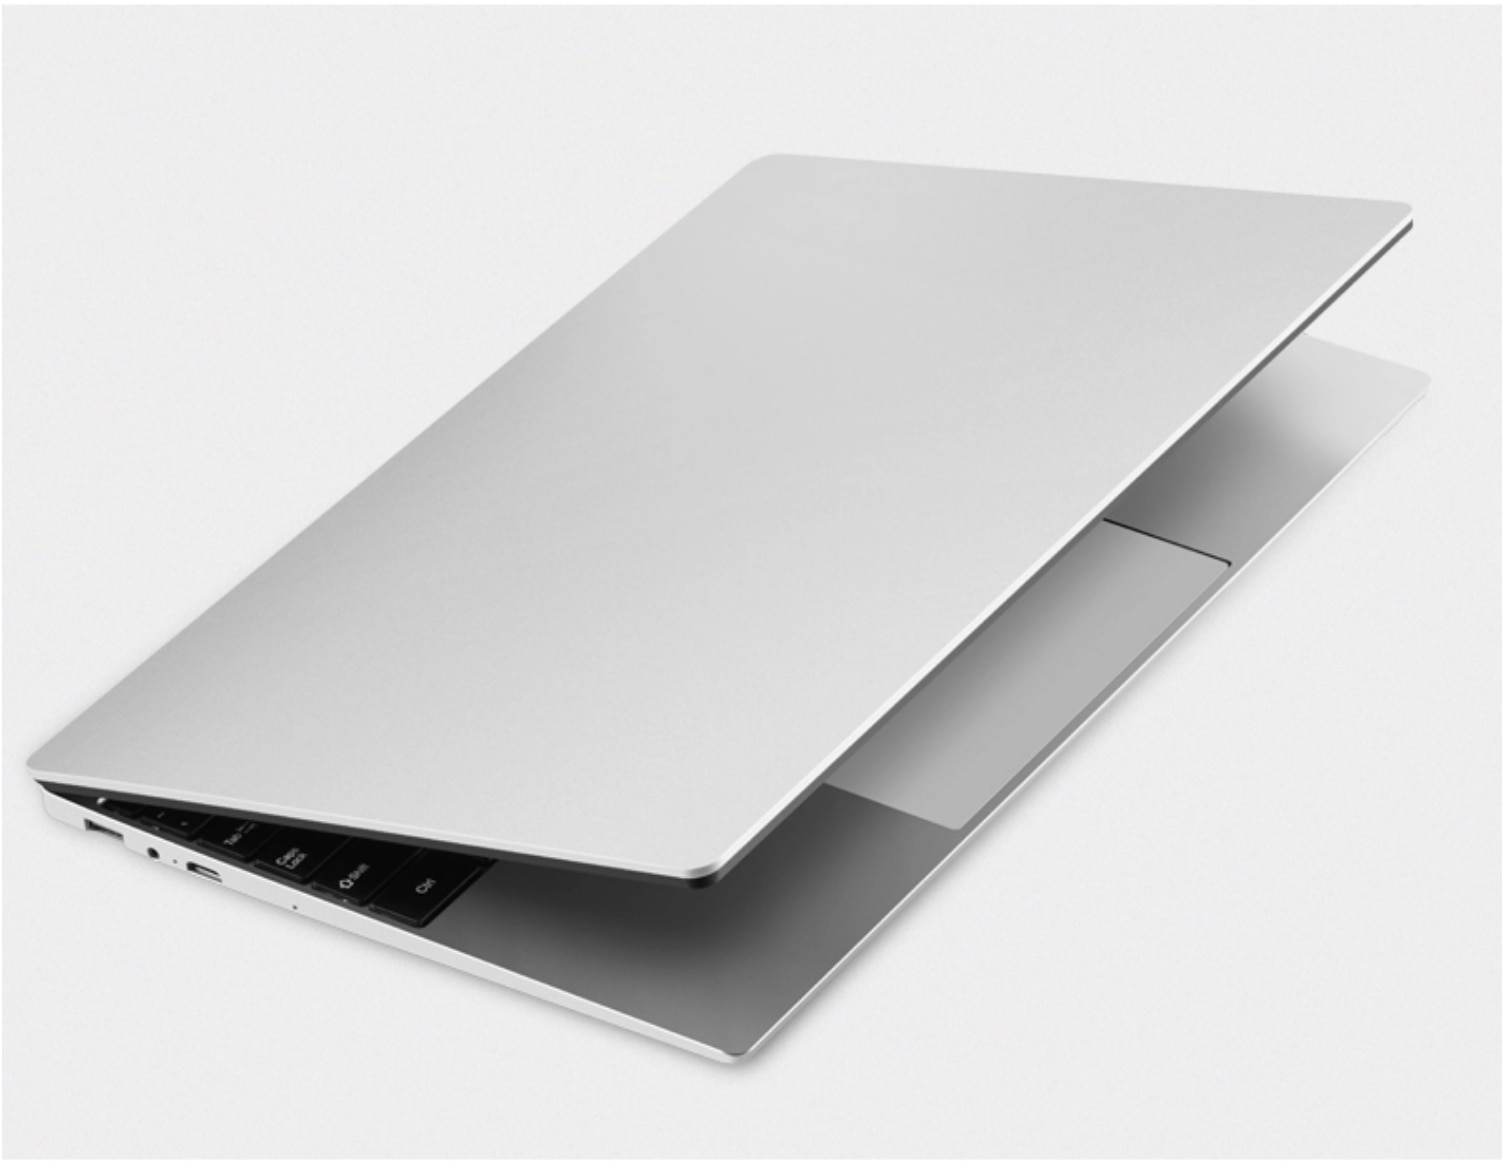 Top 10 Selling 13.3 15.6 17 inch laptop notebook computer i7, Alibaba plastic case Cheap prices in China core i5 laptop